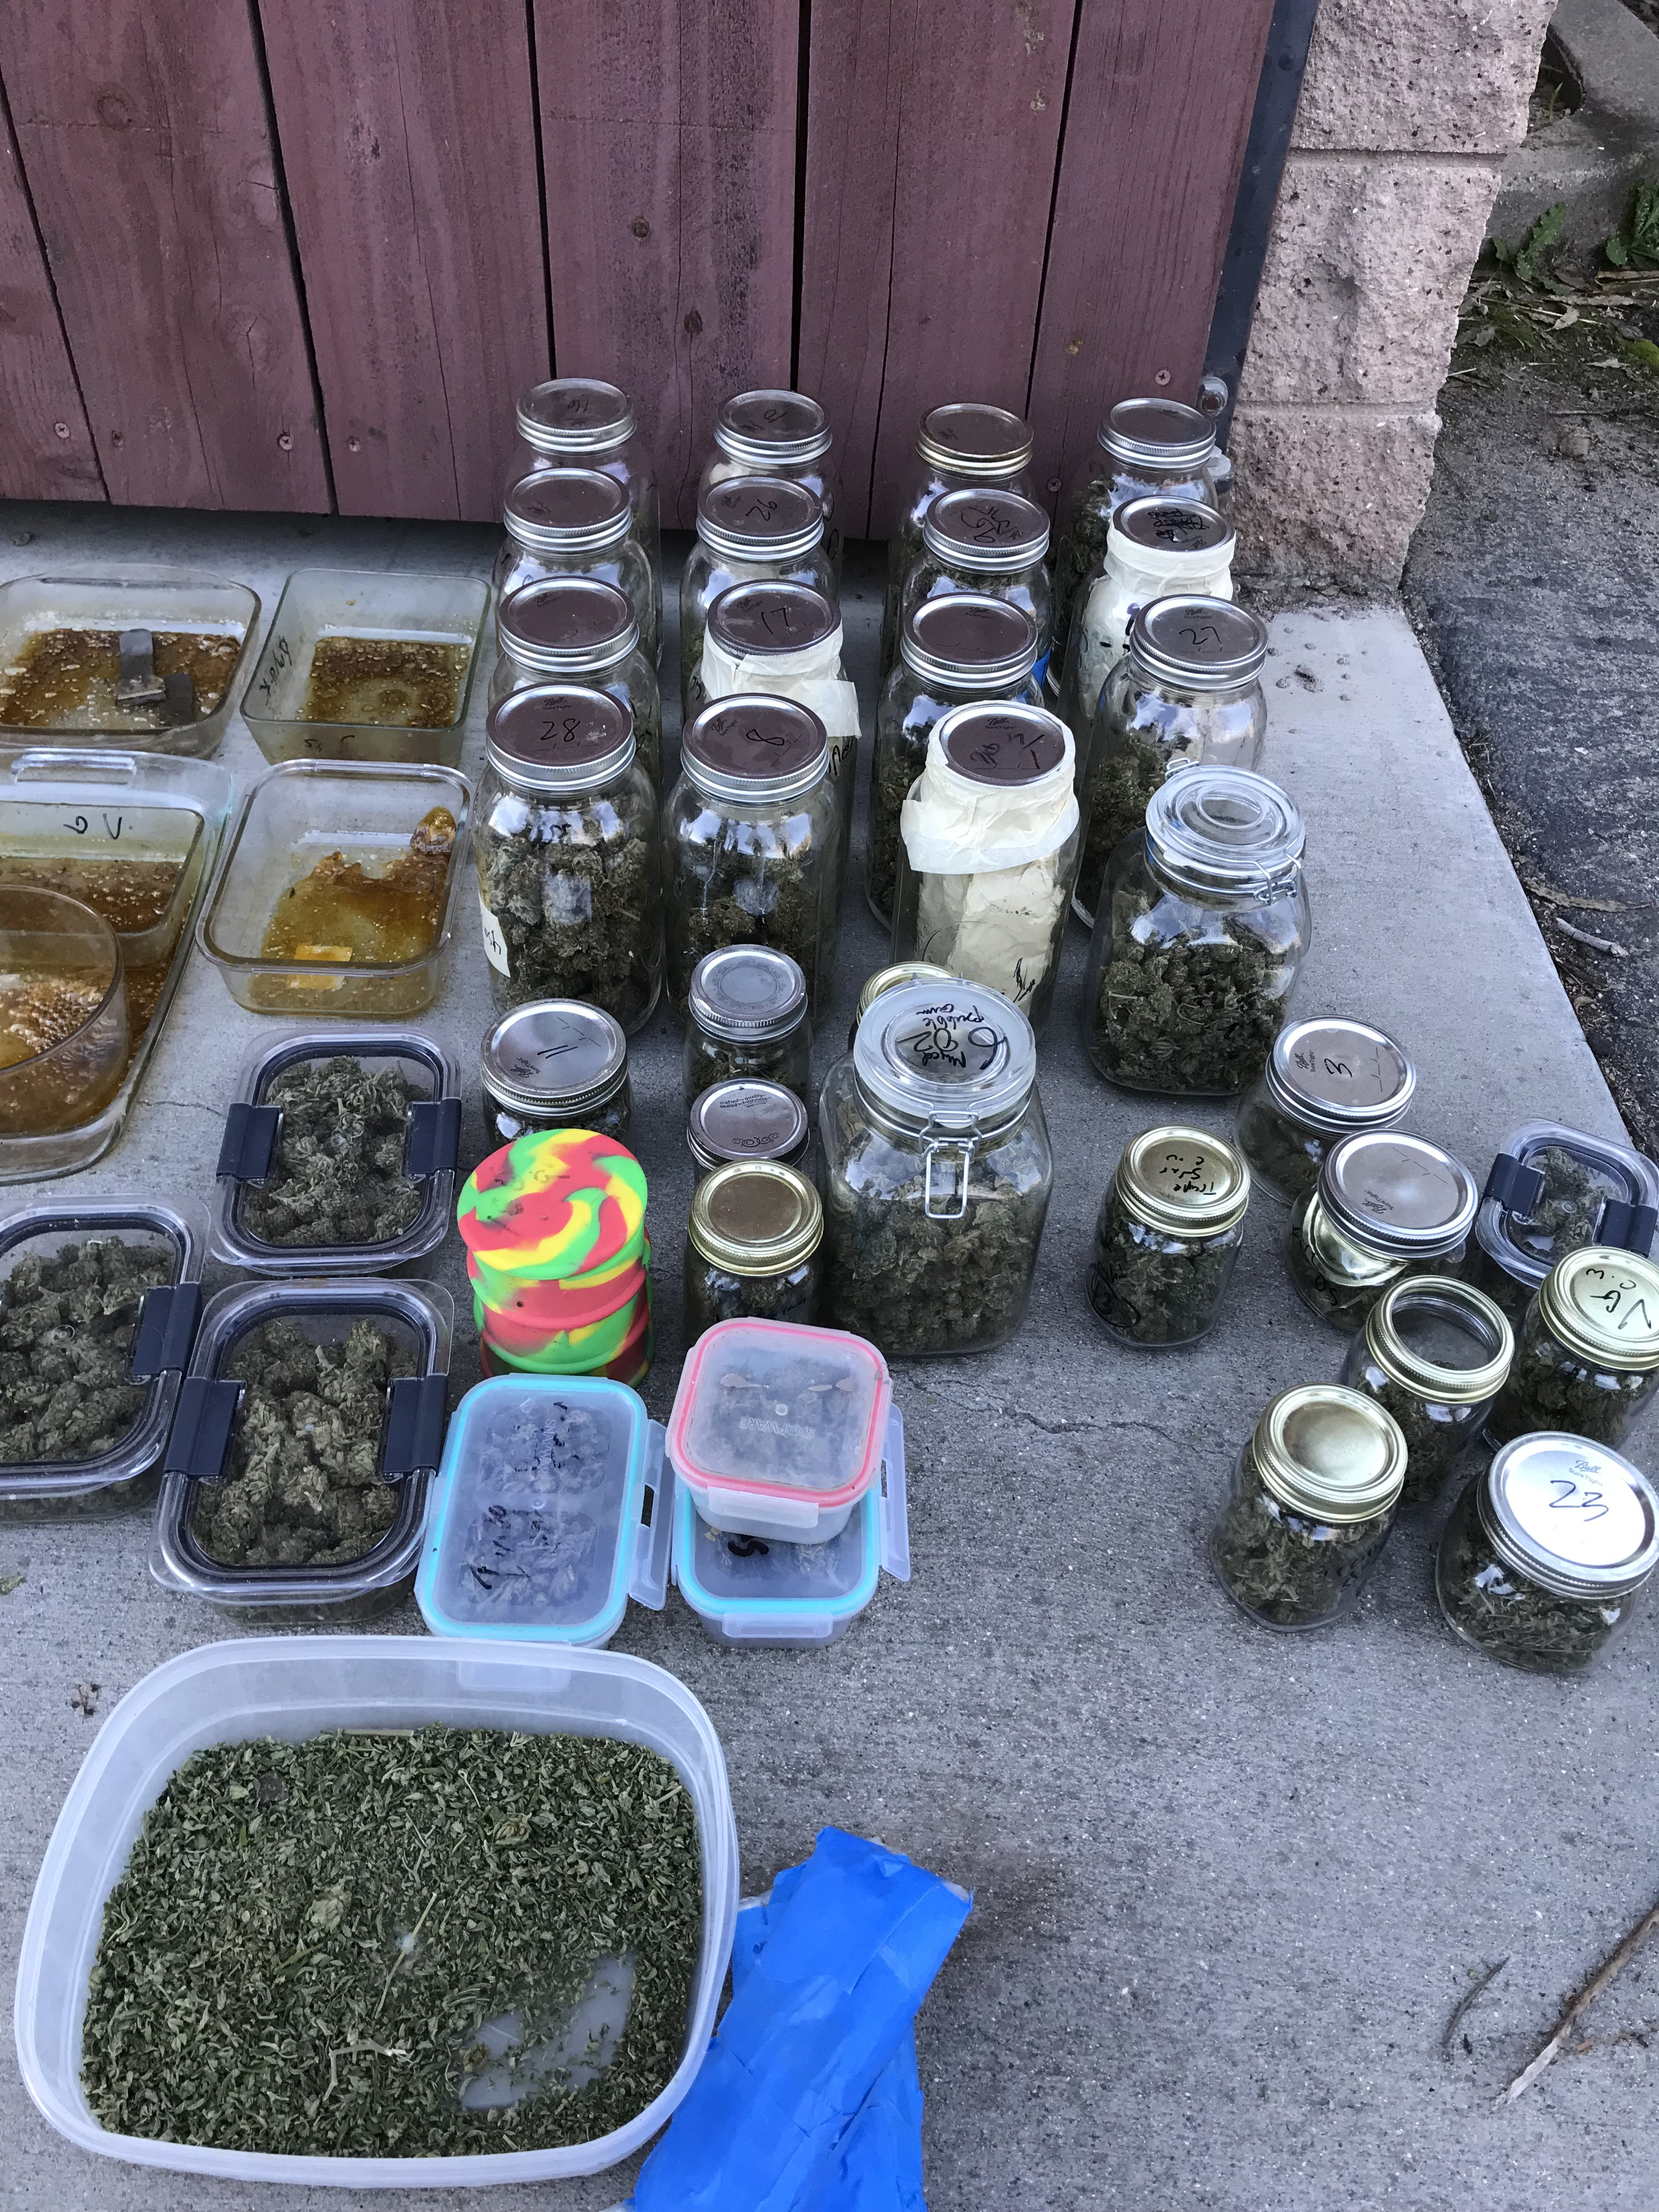 Sheriff's Detectives Investigate Hash Oil Lab Following Explosion at